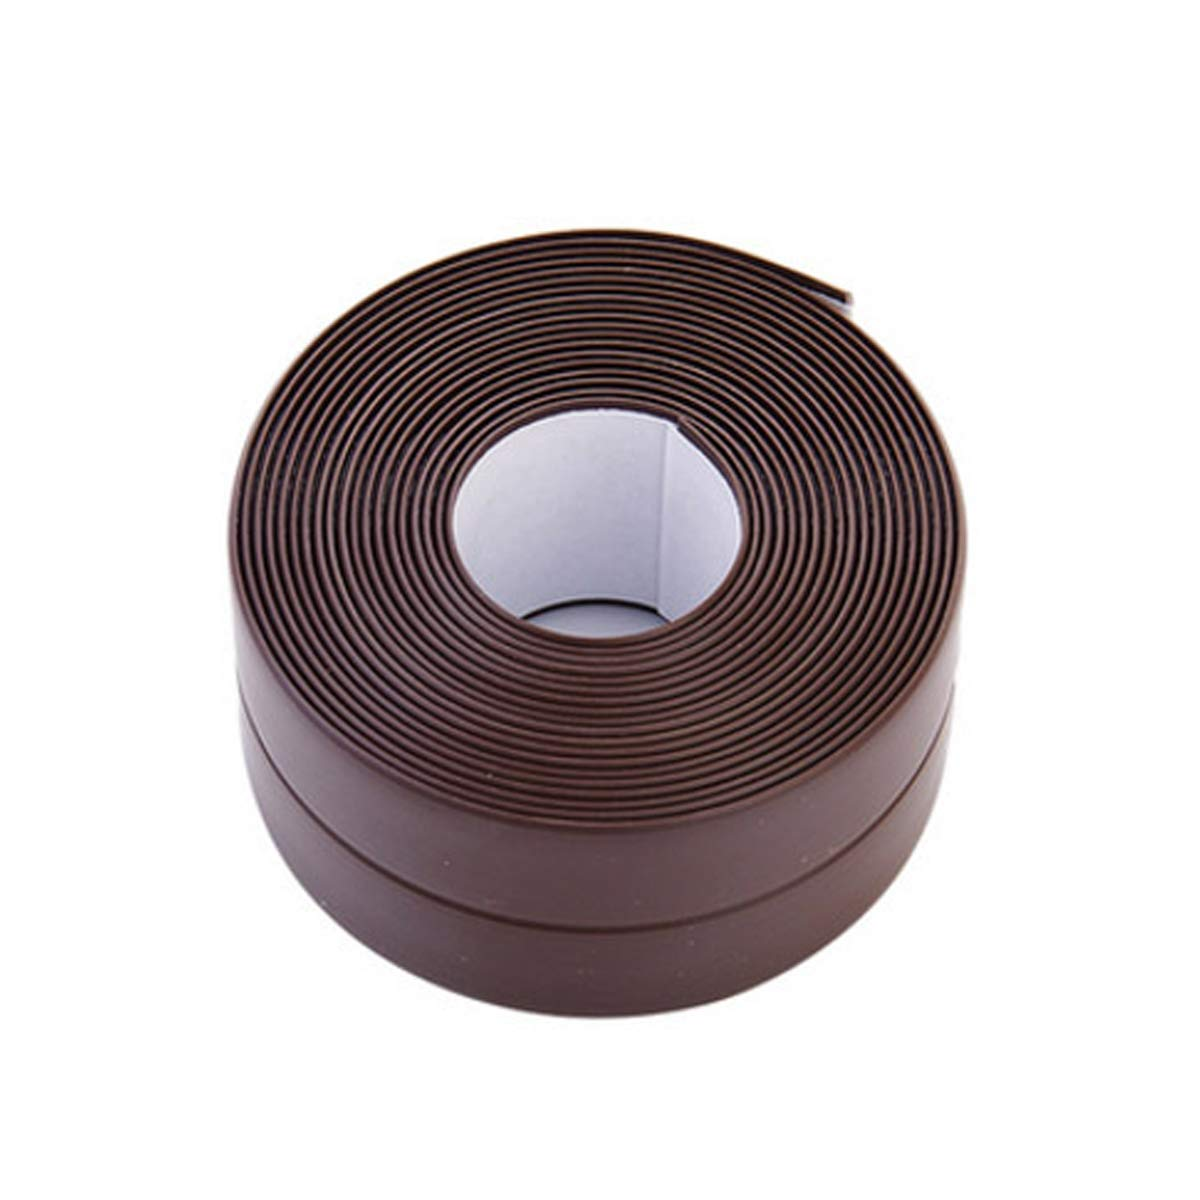 Donnagelia Caulk Strip PVC Self Adhesive Wall Sealing Tape Pre-Shaped & Waterproof & Mildewproof for Kitchen Bathroom Tub Toilet 320cm x 3.8cm